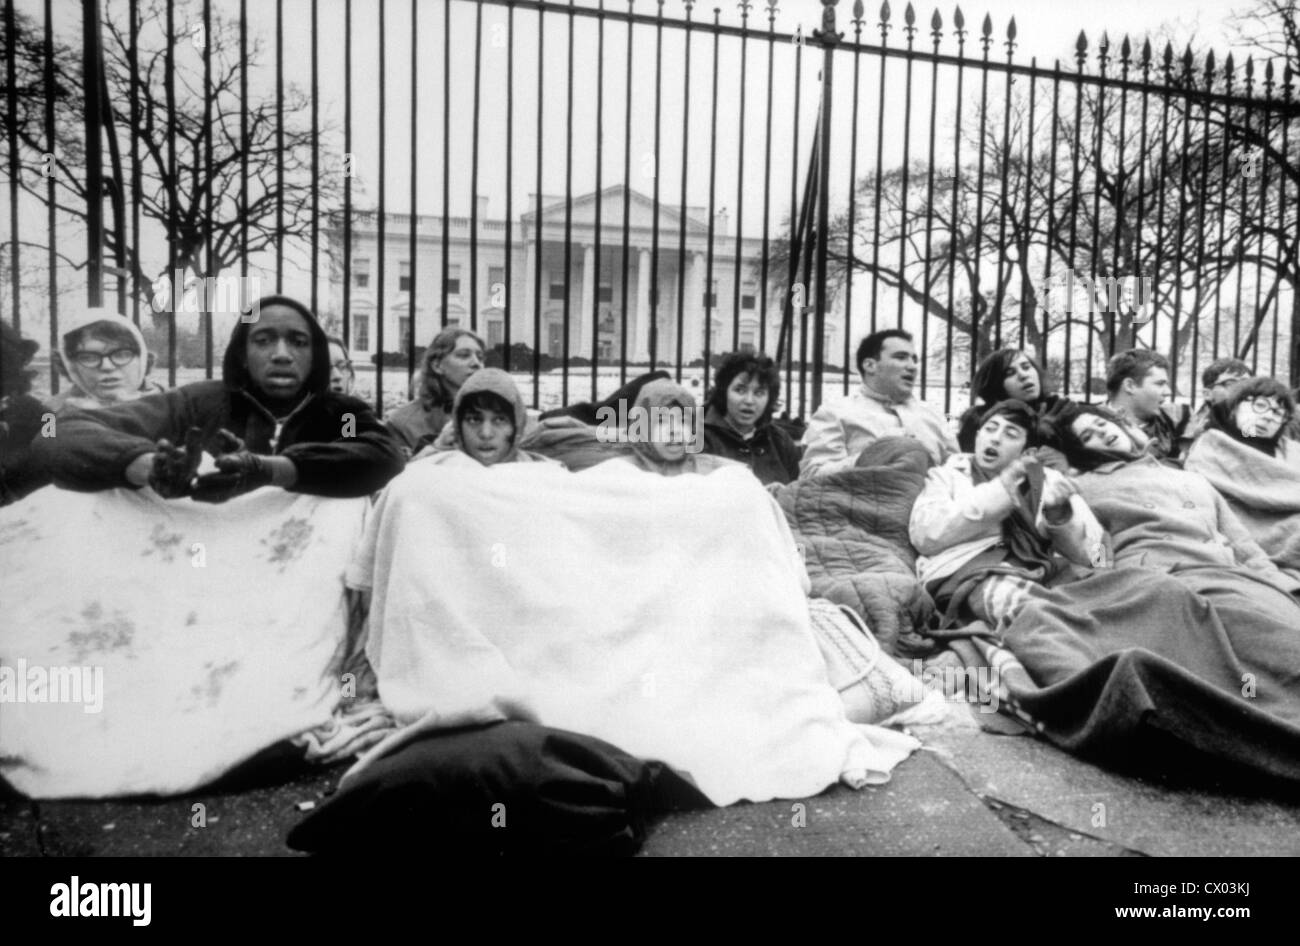 Civil Rights Demonstrators Maintain All-Night Vigil at White House, Washington DC, USA, March 18, 1965 - Stock Image